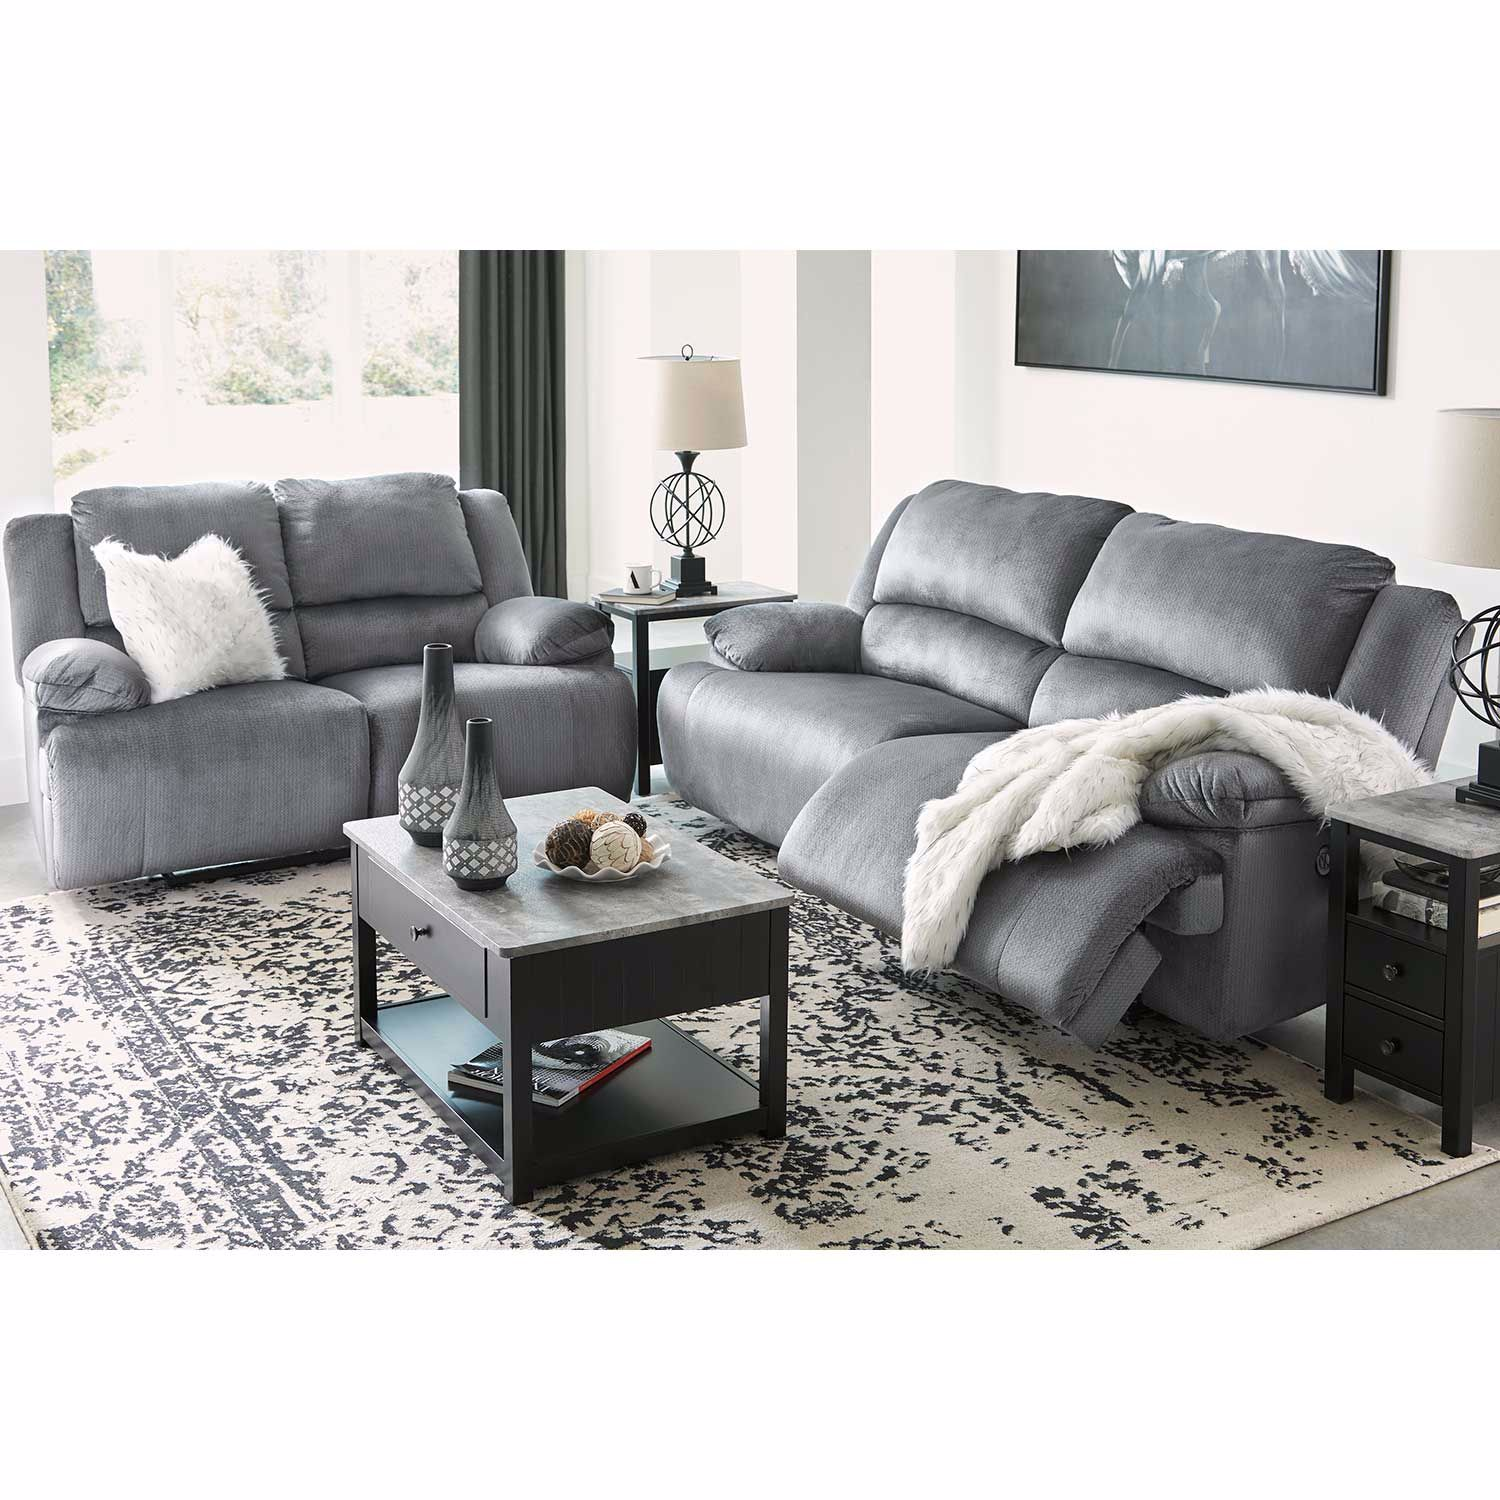 Picture of Charcoal Power Recliner